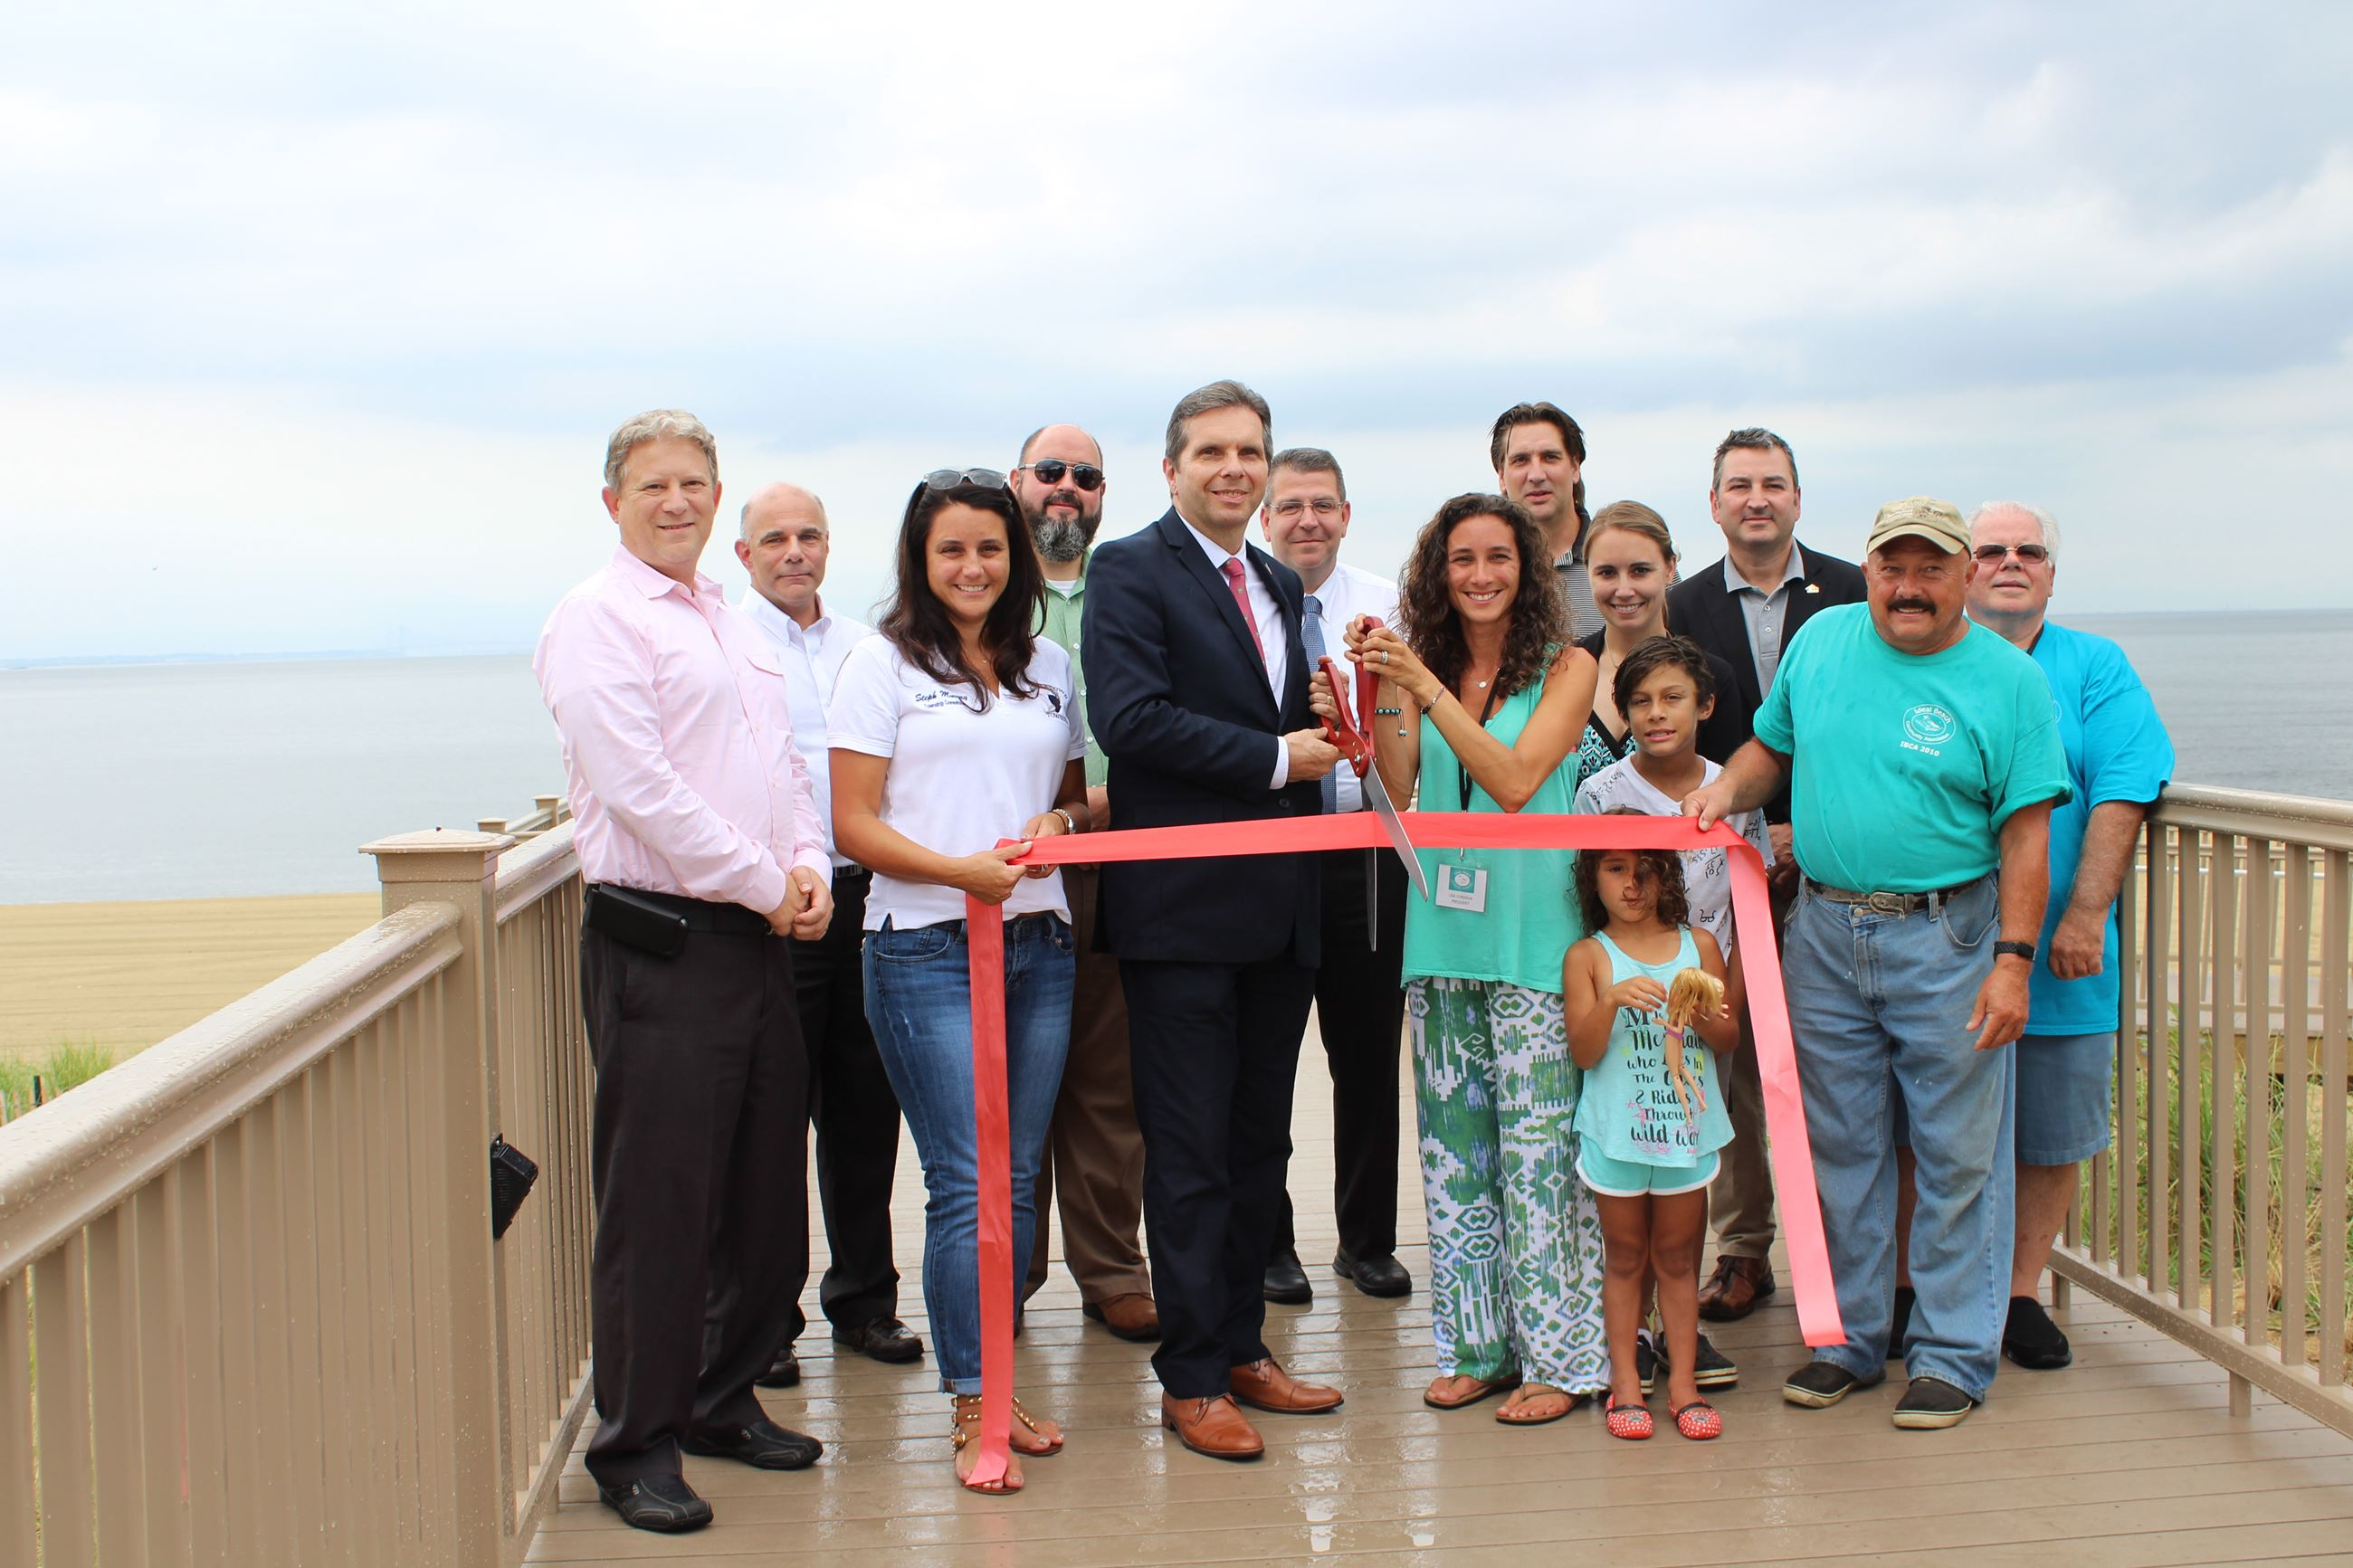 Ideal Beach Structured Pedestrian Access Ribbon Cutting Ceremony